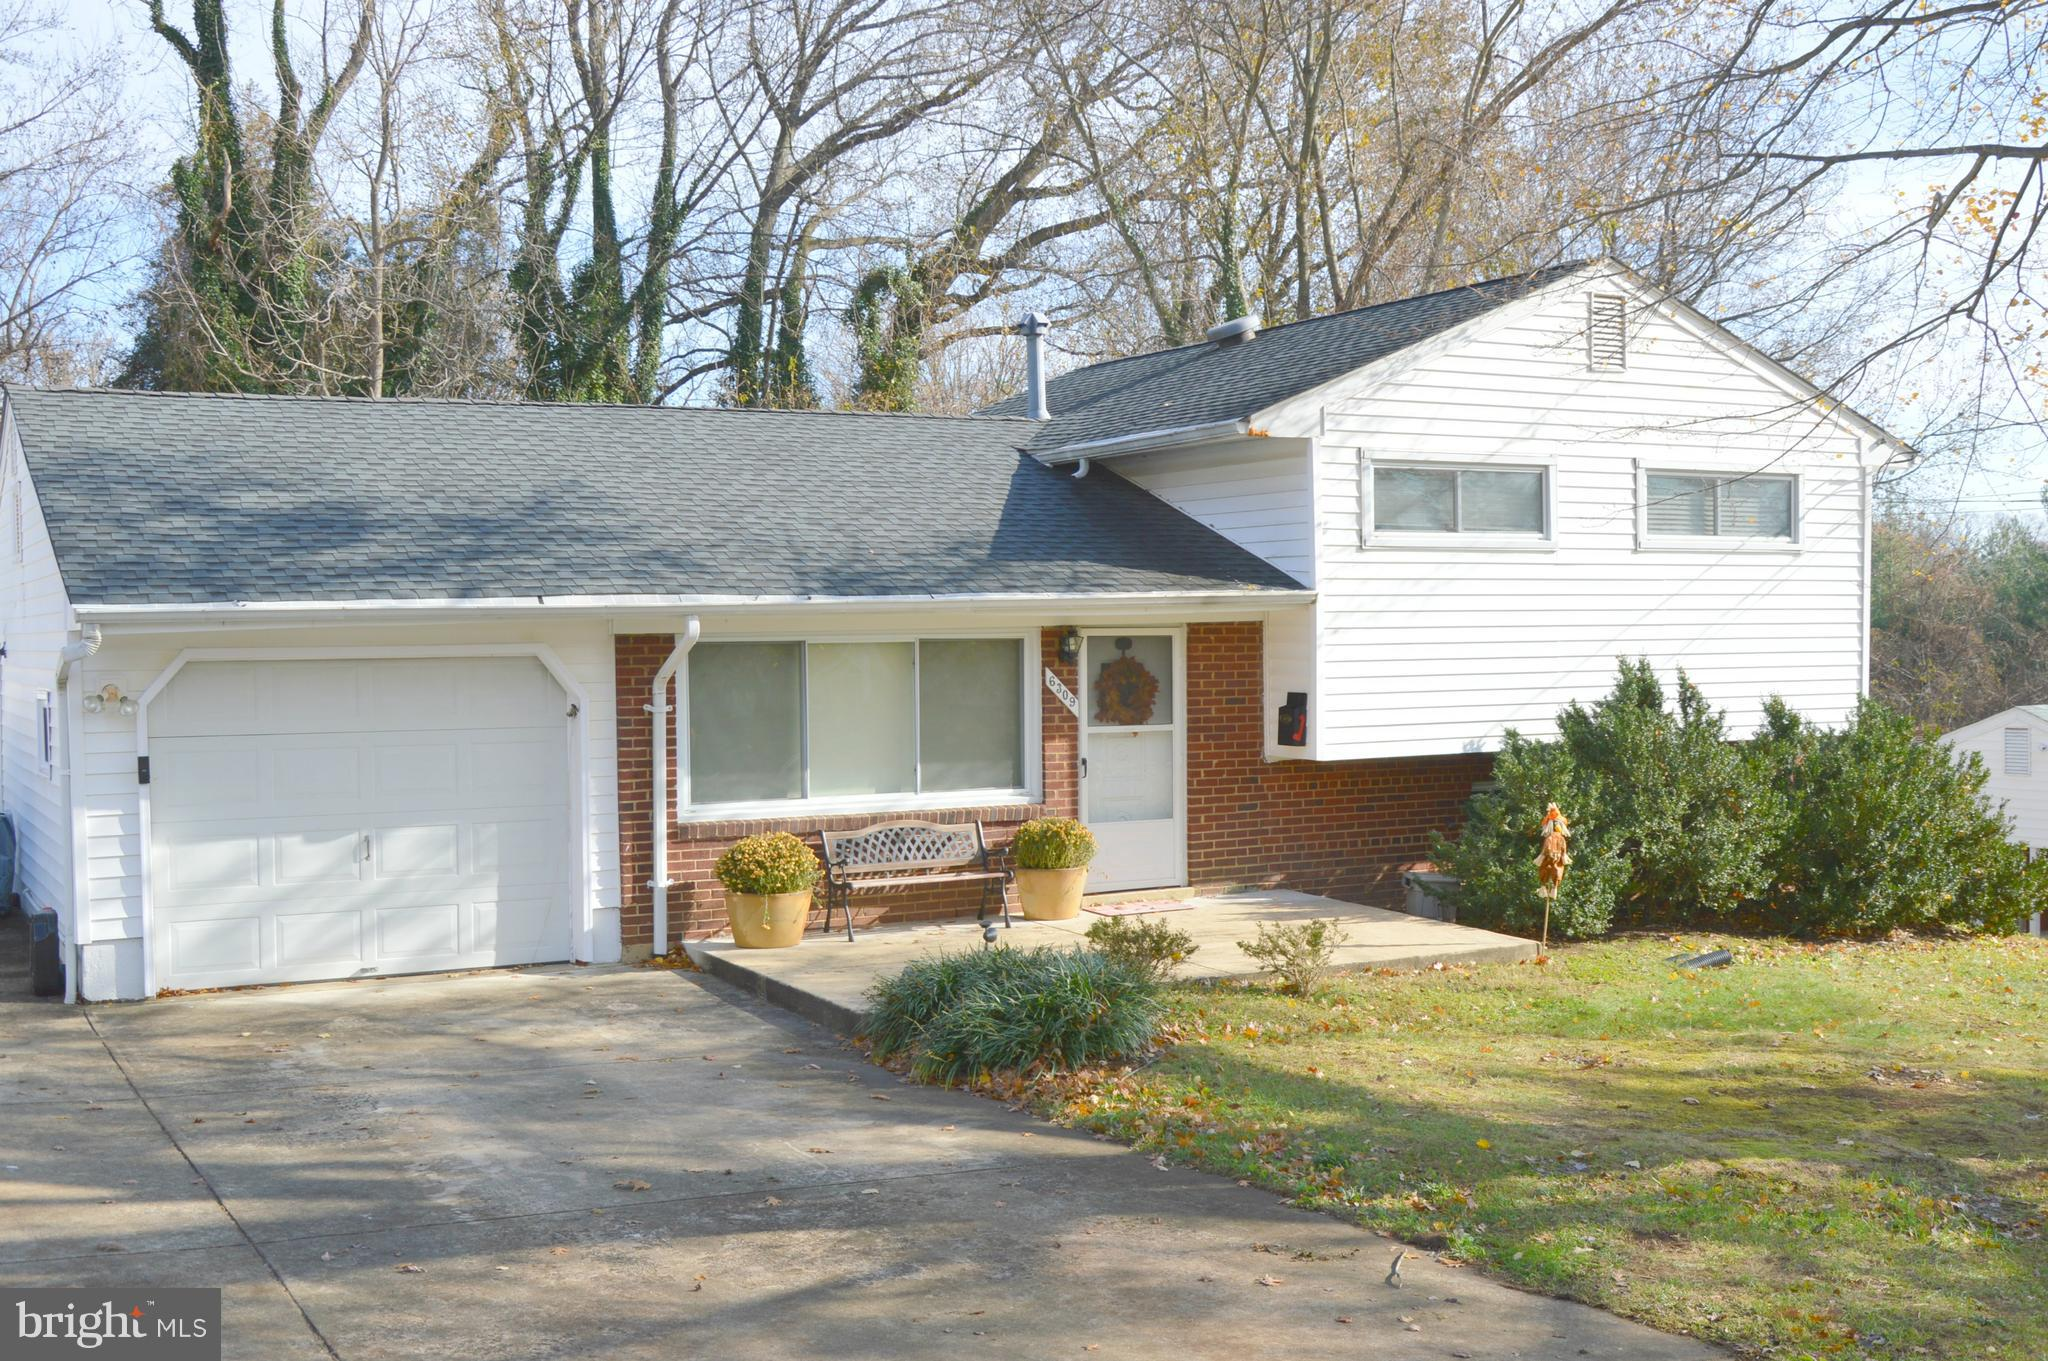 ATTRACTIVE 3 LEVEL/SPLIT LEVEL HOME IN ROSE HILL FARMS. LARGE FENCED REAR YARD, ONE CAR GARAGE, OVERSIZED DRIVEWAY, NEWER TOP OF THE LINE ROOF! MOVE IN CONDITION! CLOSE TO ELEMENTARY SCHOOL, LIBRARY,REC CENTER,SHOPPING , 2 METRO STOPS AND THE BELTWAY.